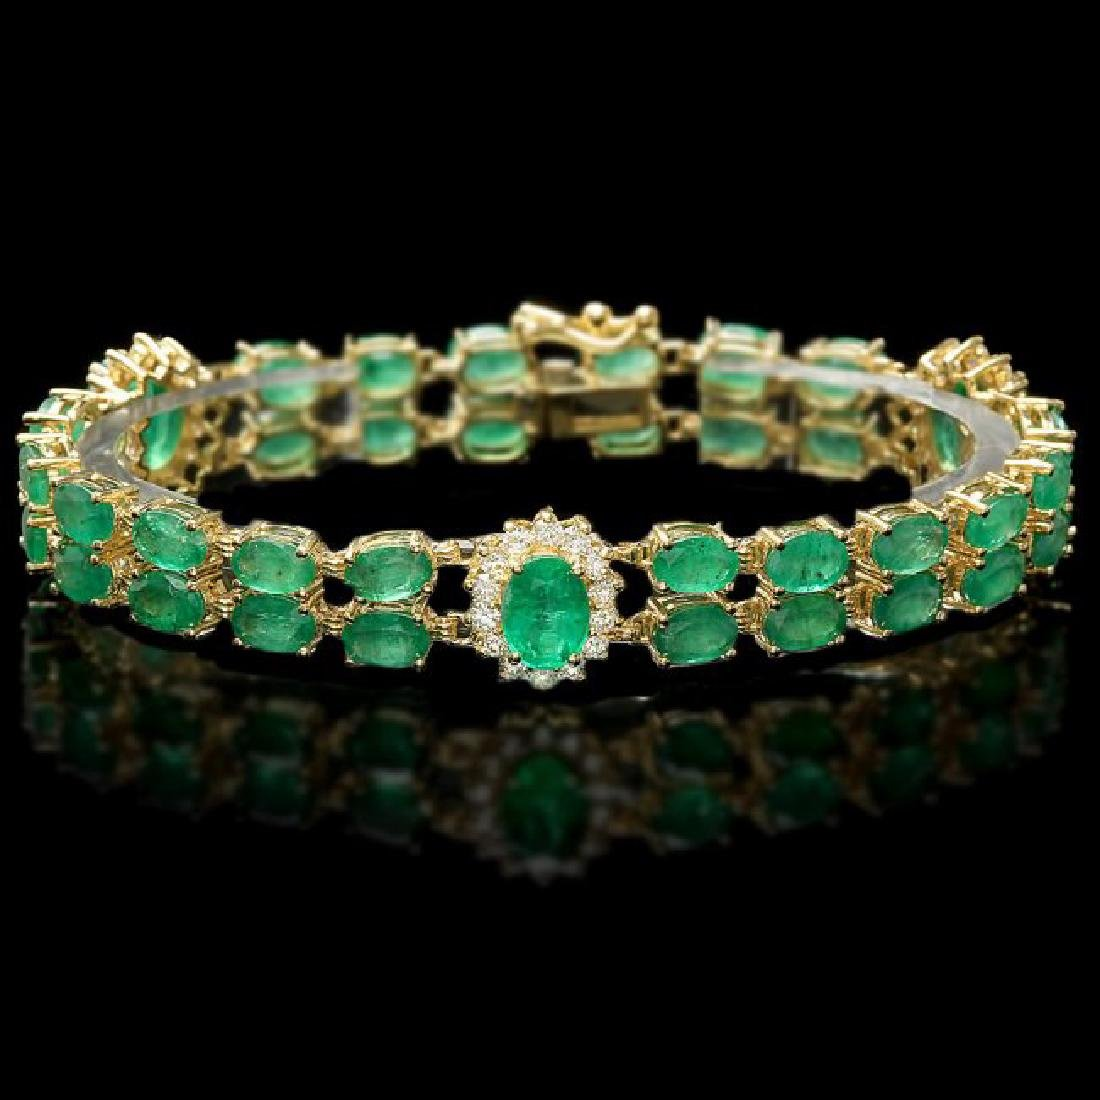 14k Gold 18ct Emerald 1.50ct Diamond Bracelet